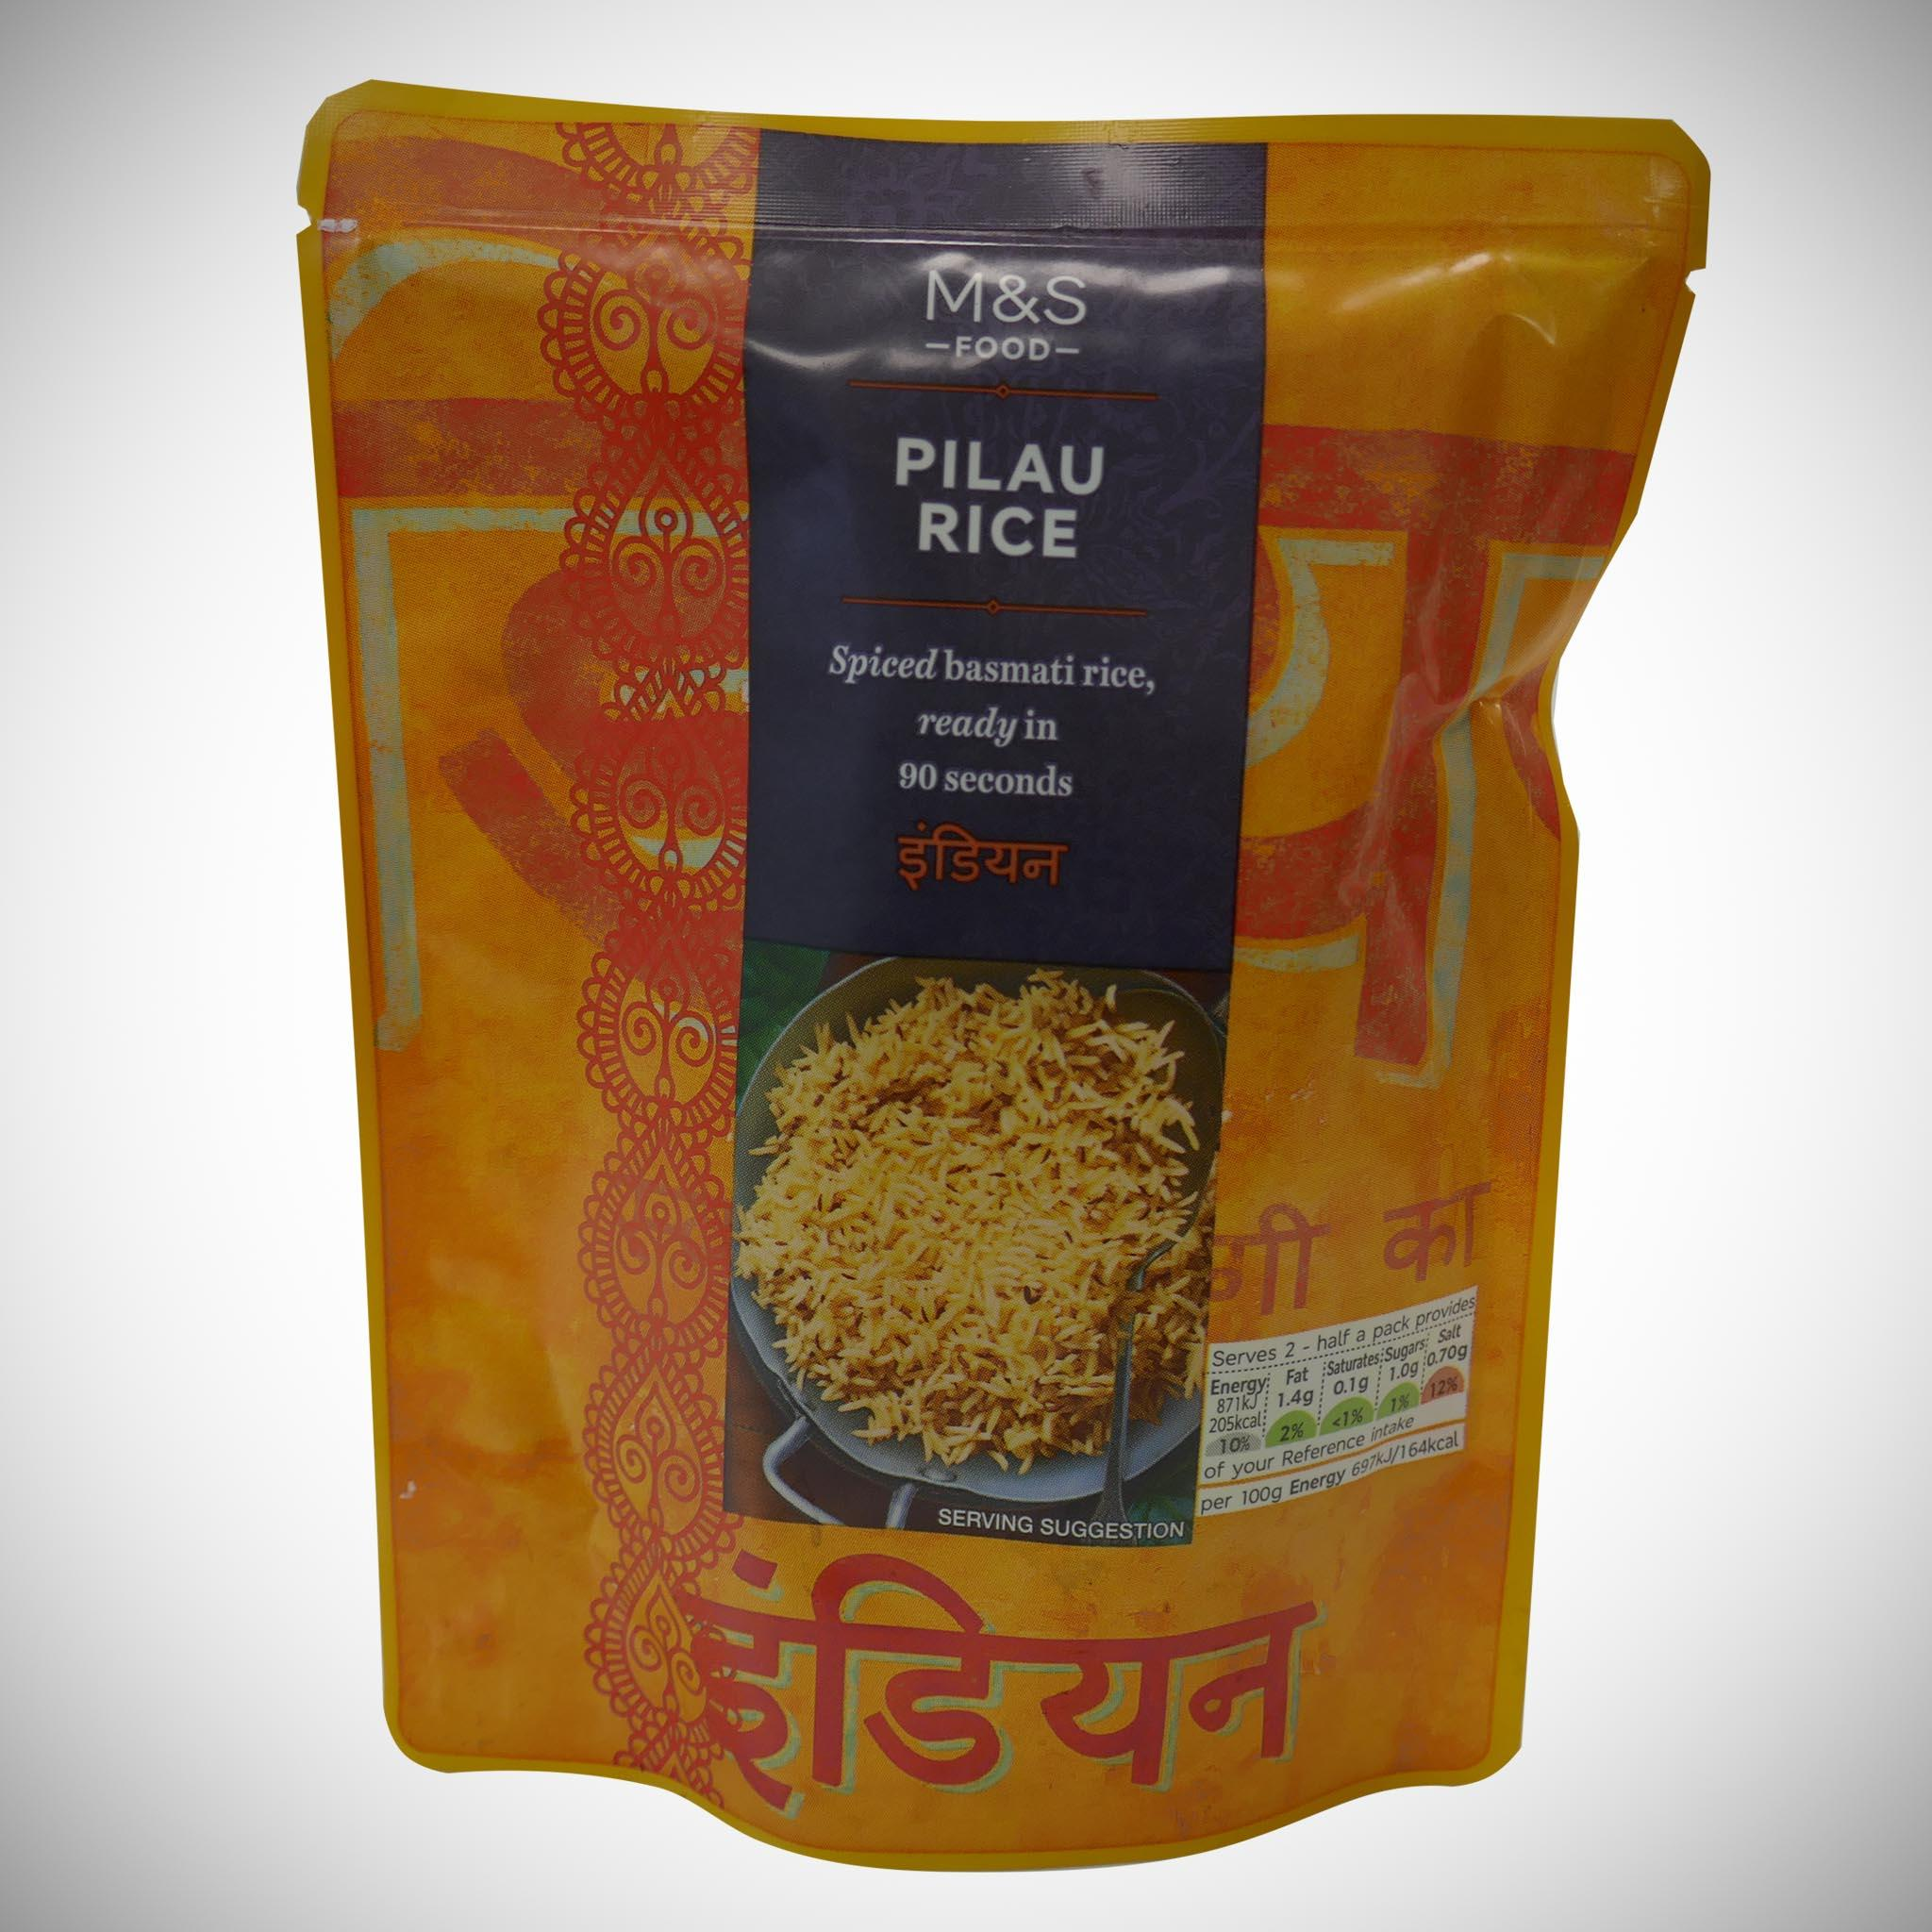 Microwaveable Pilau Rice 250g